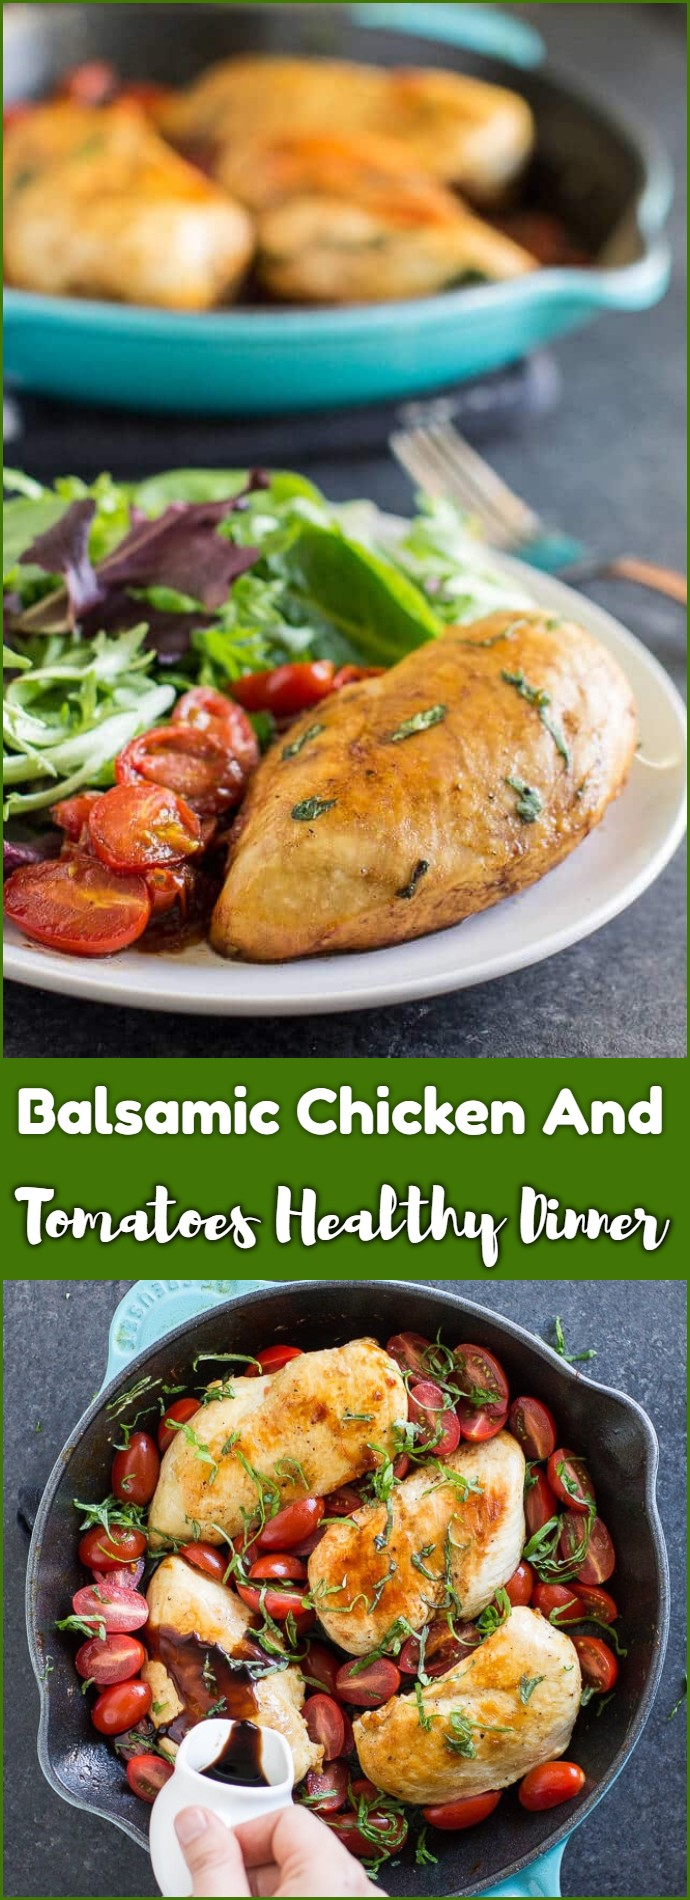 Balsamic Chicken And Tomatoes Healthy Dinner